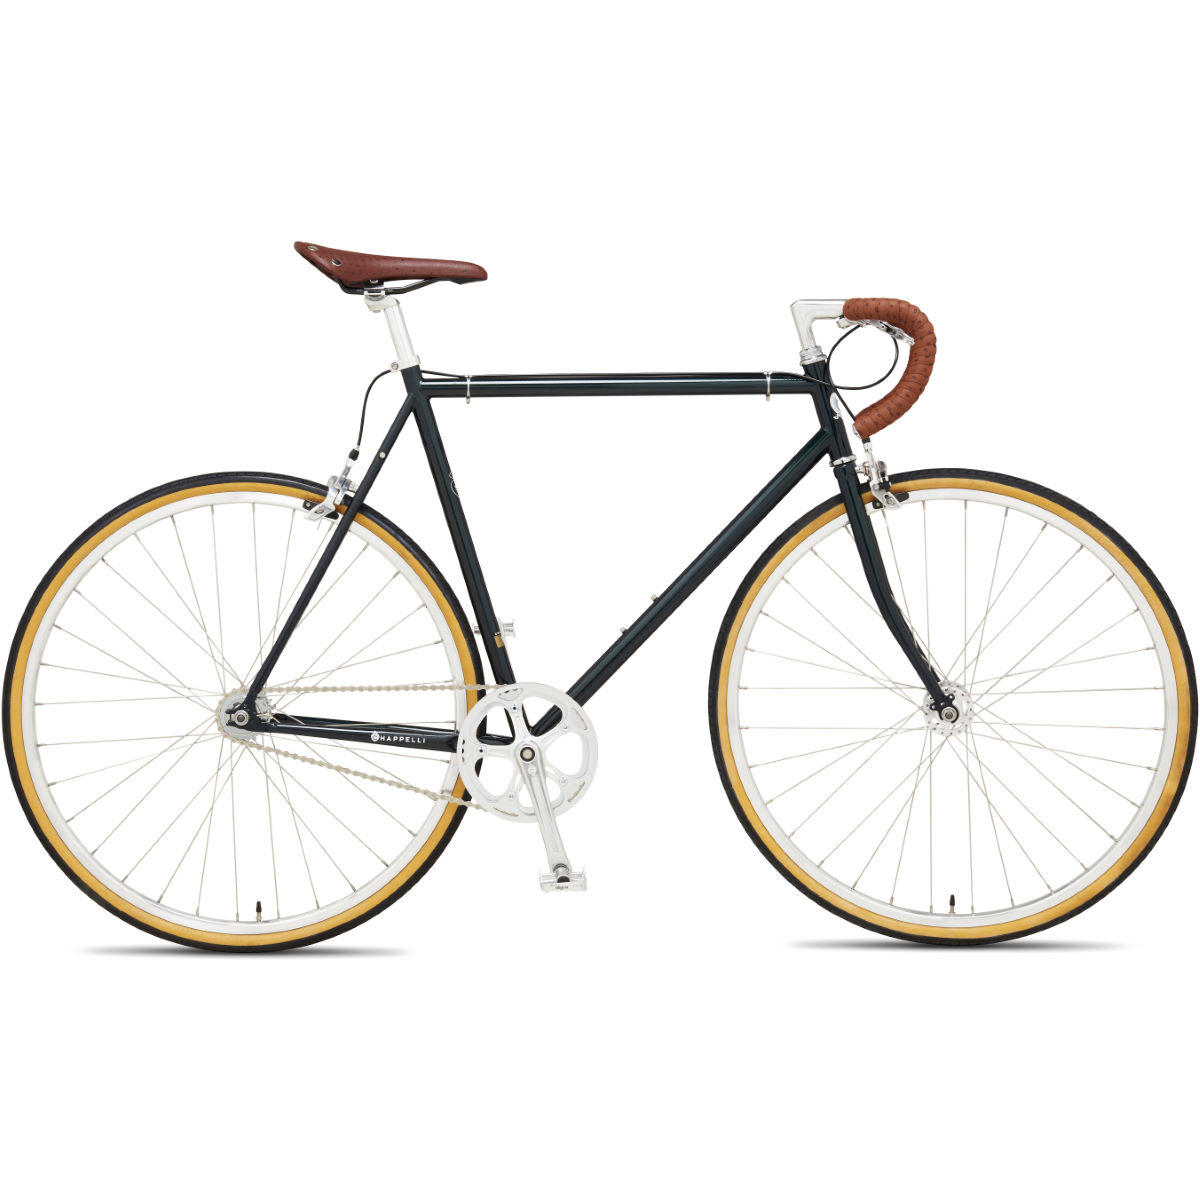 Chappelli Vintage Single Speed Bike (2017) - Bicicletas fixie